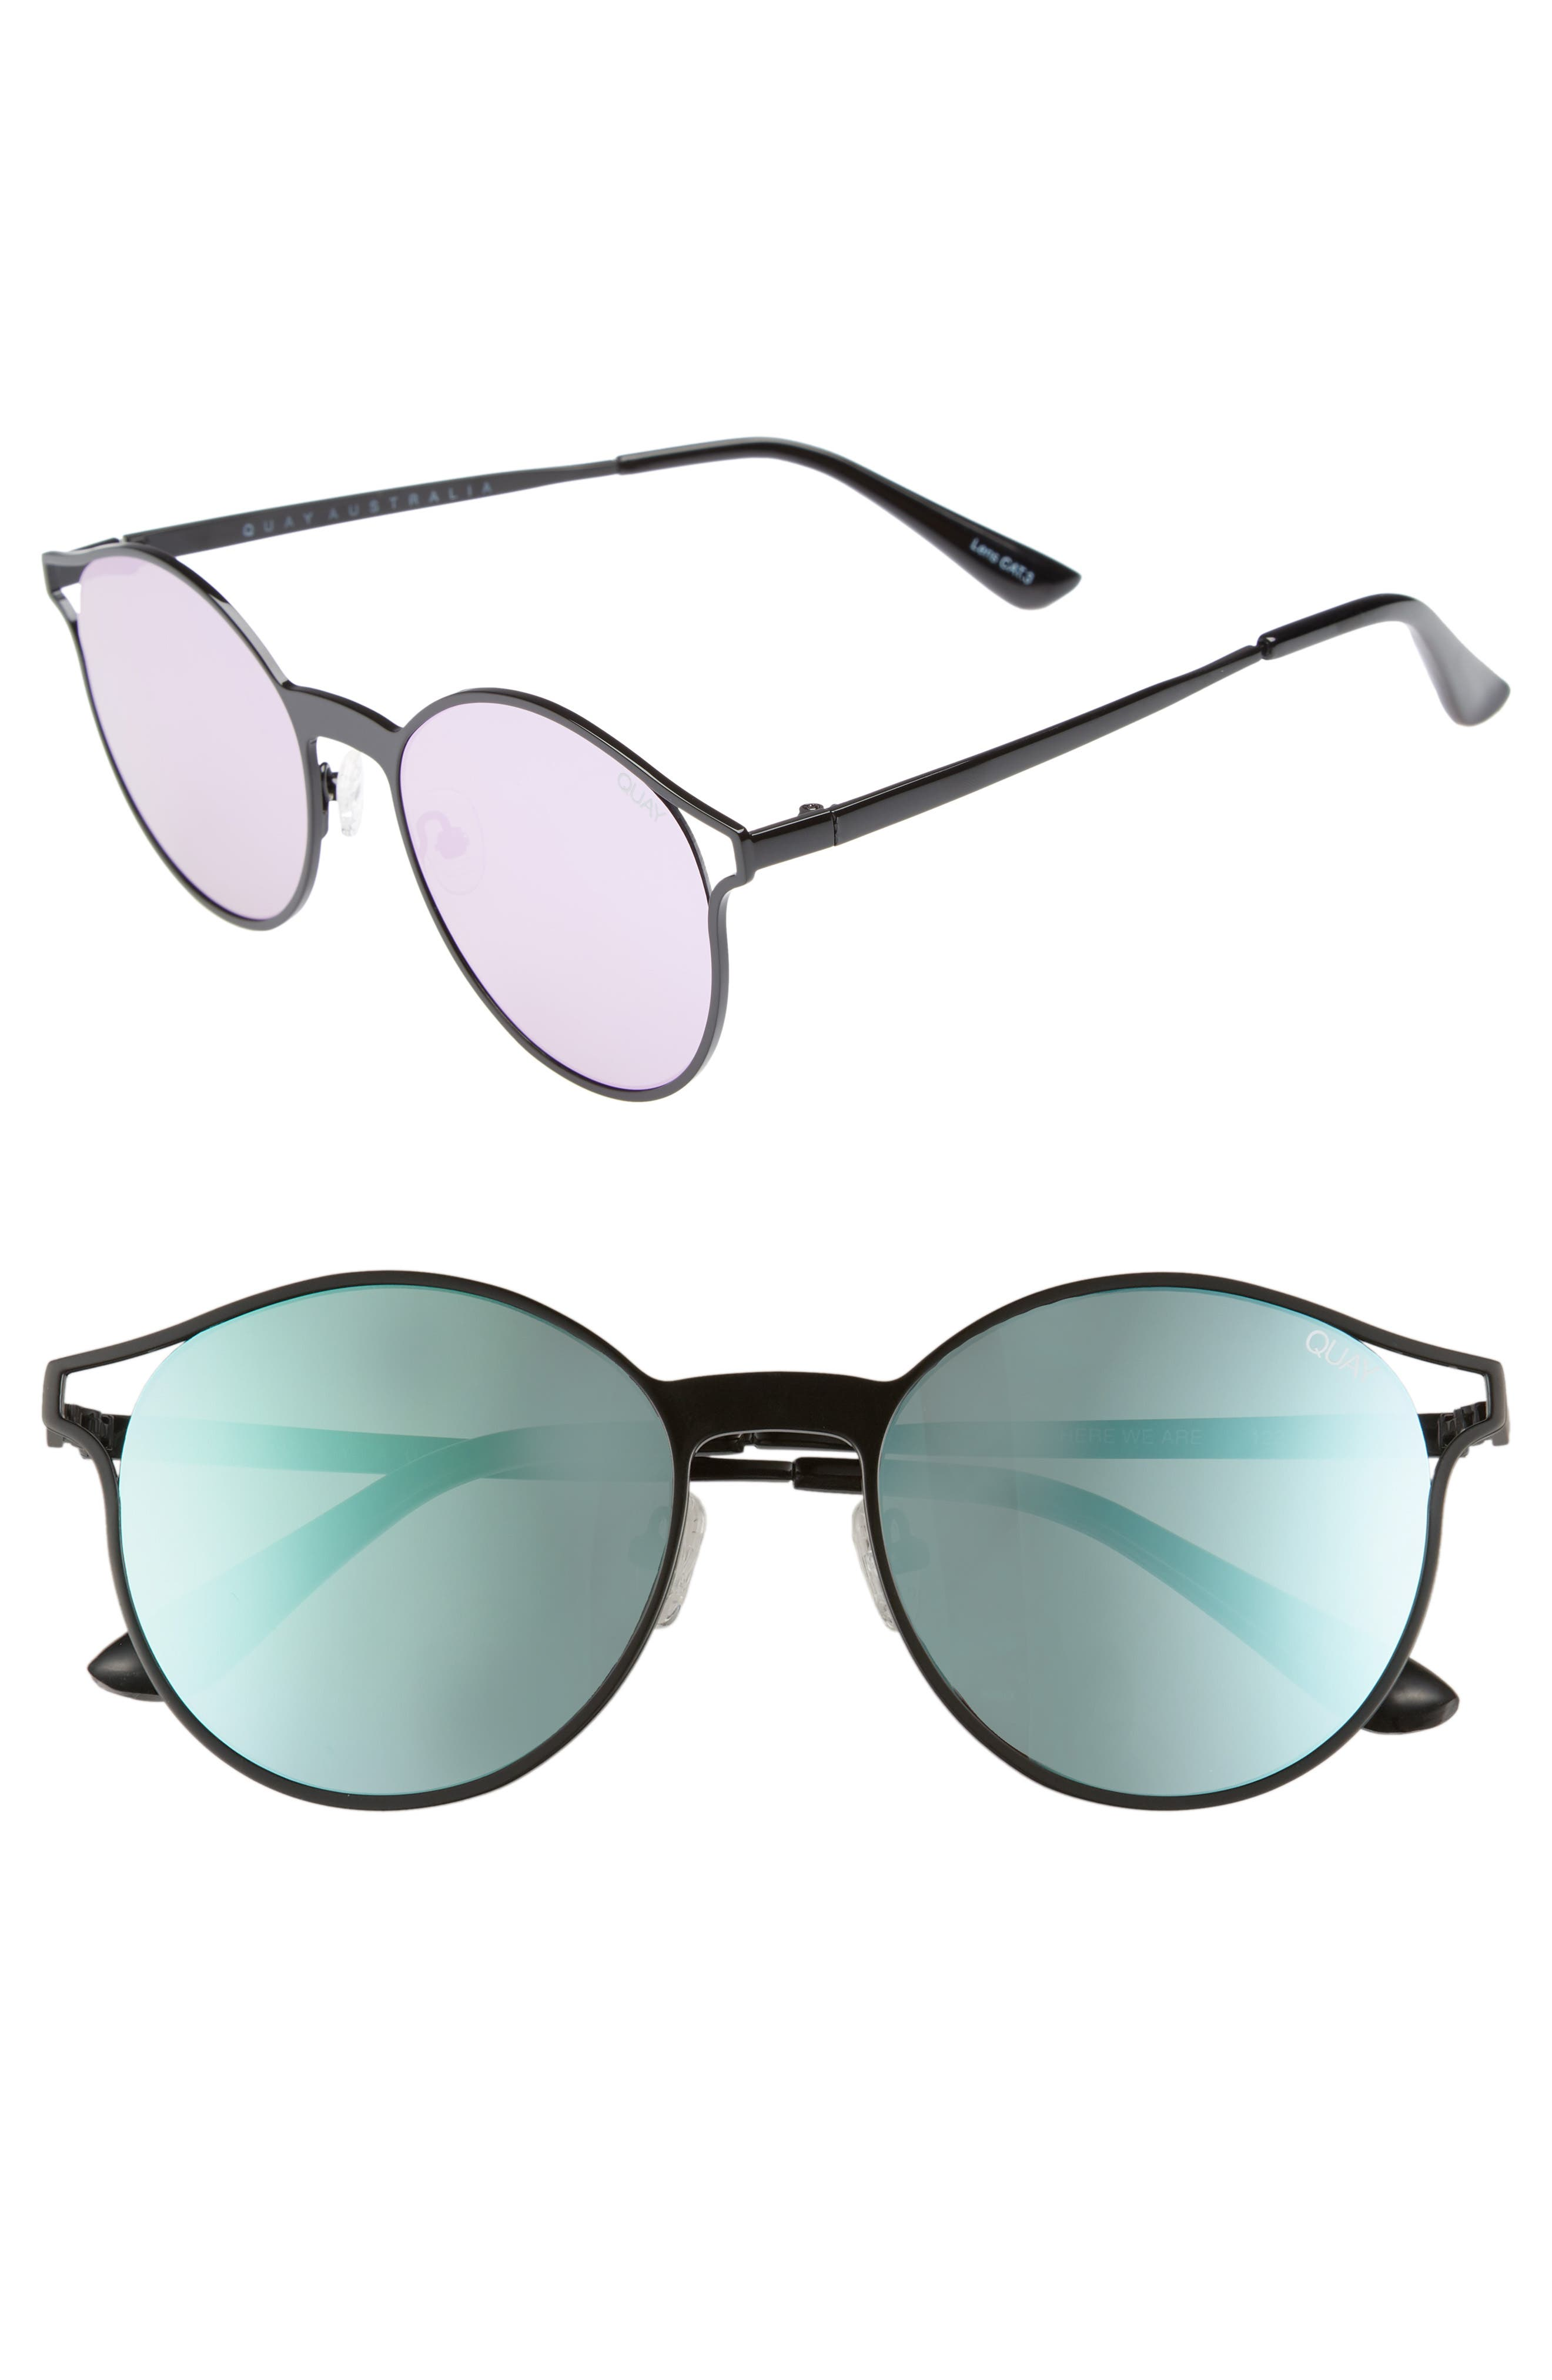 Here We Are 53mm Round Sunglasses,                             Main thumbnail 1, color,                             001